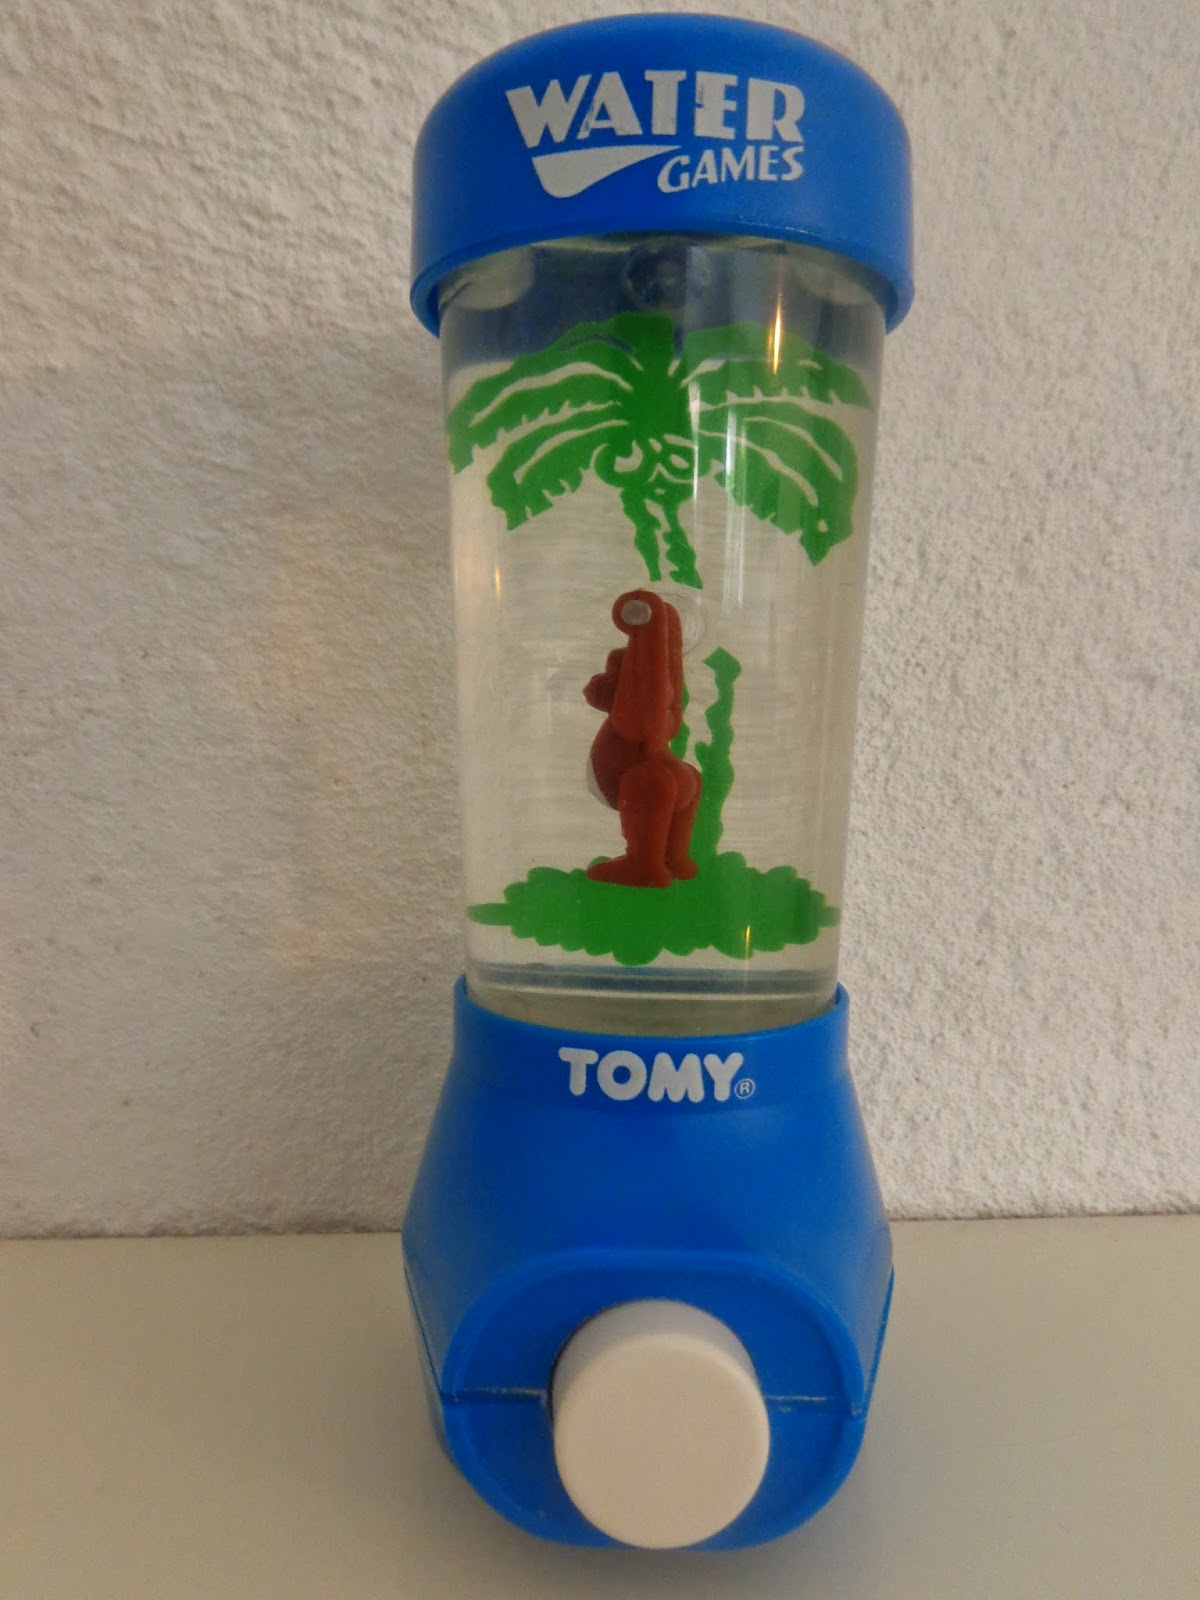 Water Game Toy : Tomy water games vintage toys waterful wonderful jeu d eau s